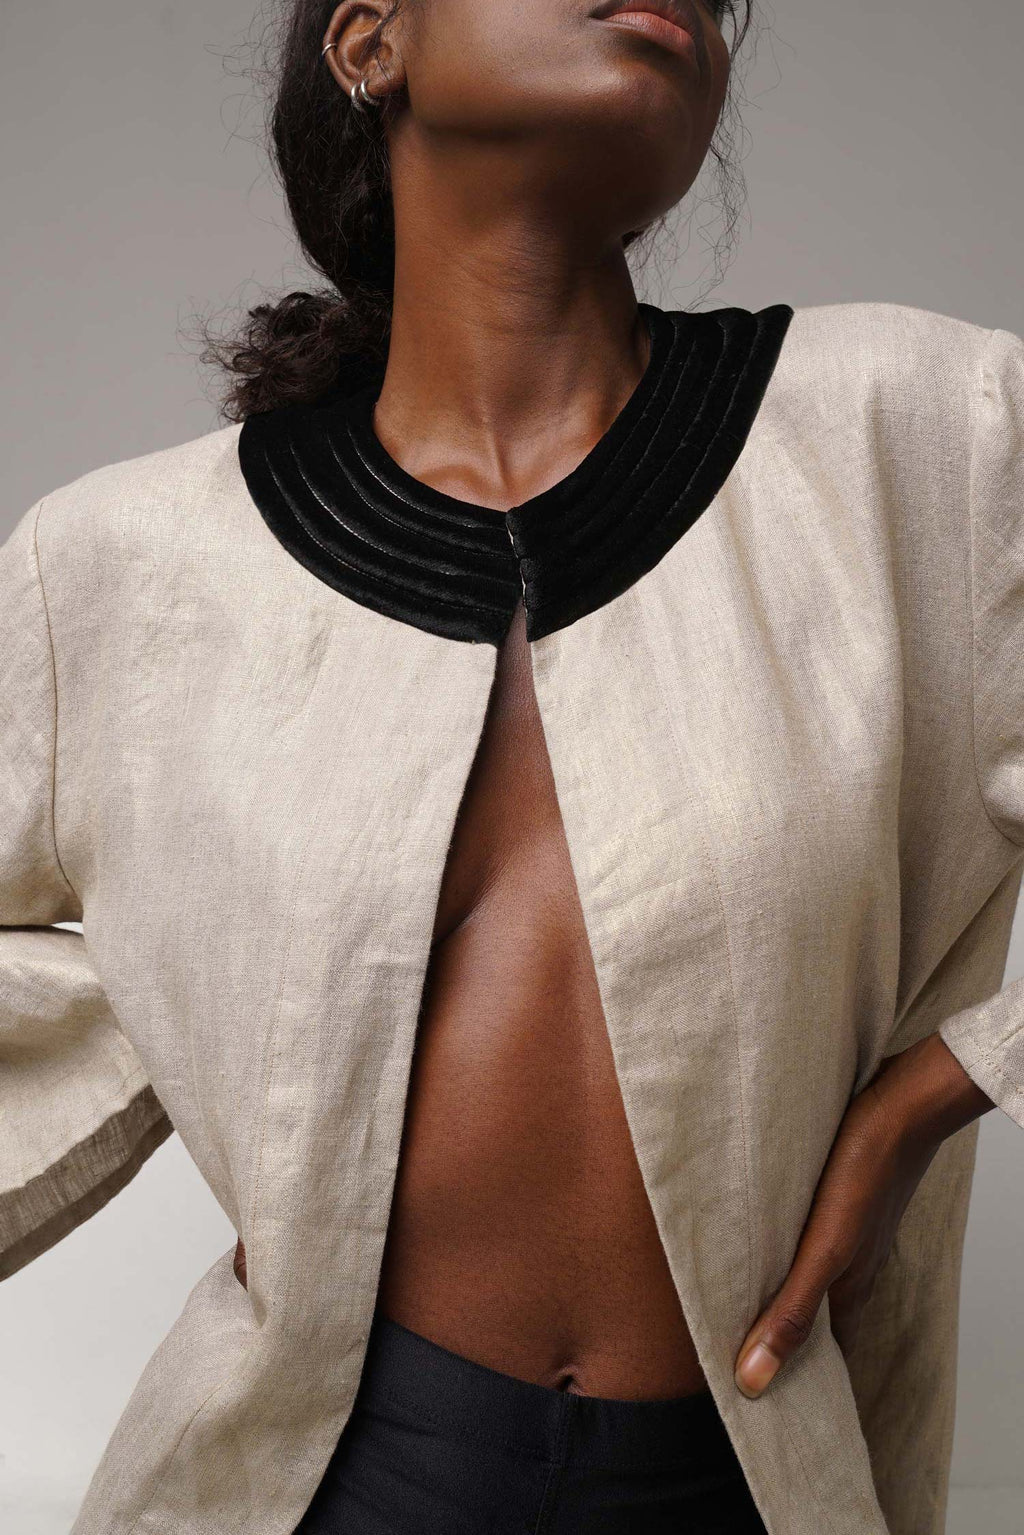 The Short Love Triangle Robe has an A-line cut in 100% linen offers a more casual-chic 60s style with its two side pockets.  The beige gold color will make you feel like a gem, and the black velvet quilted collar gives softness and structure to the look.